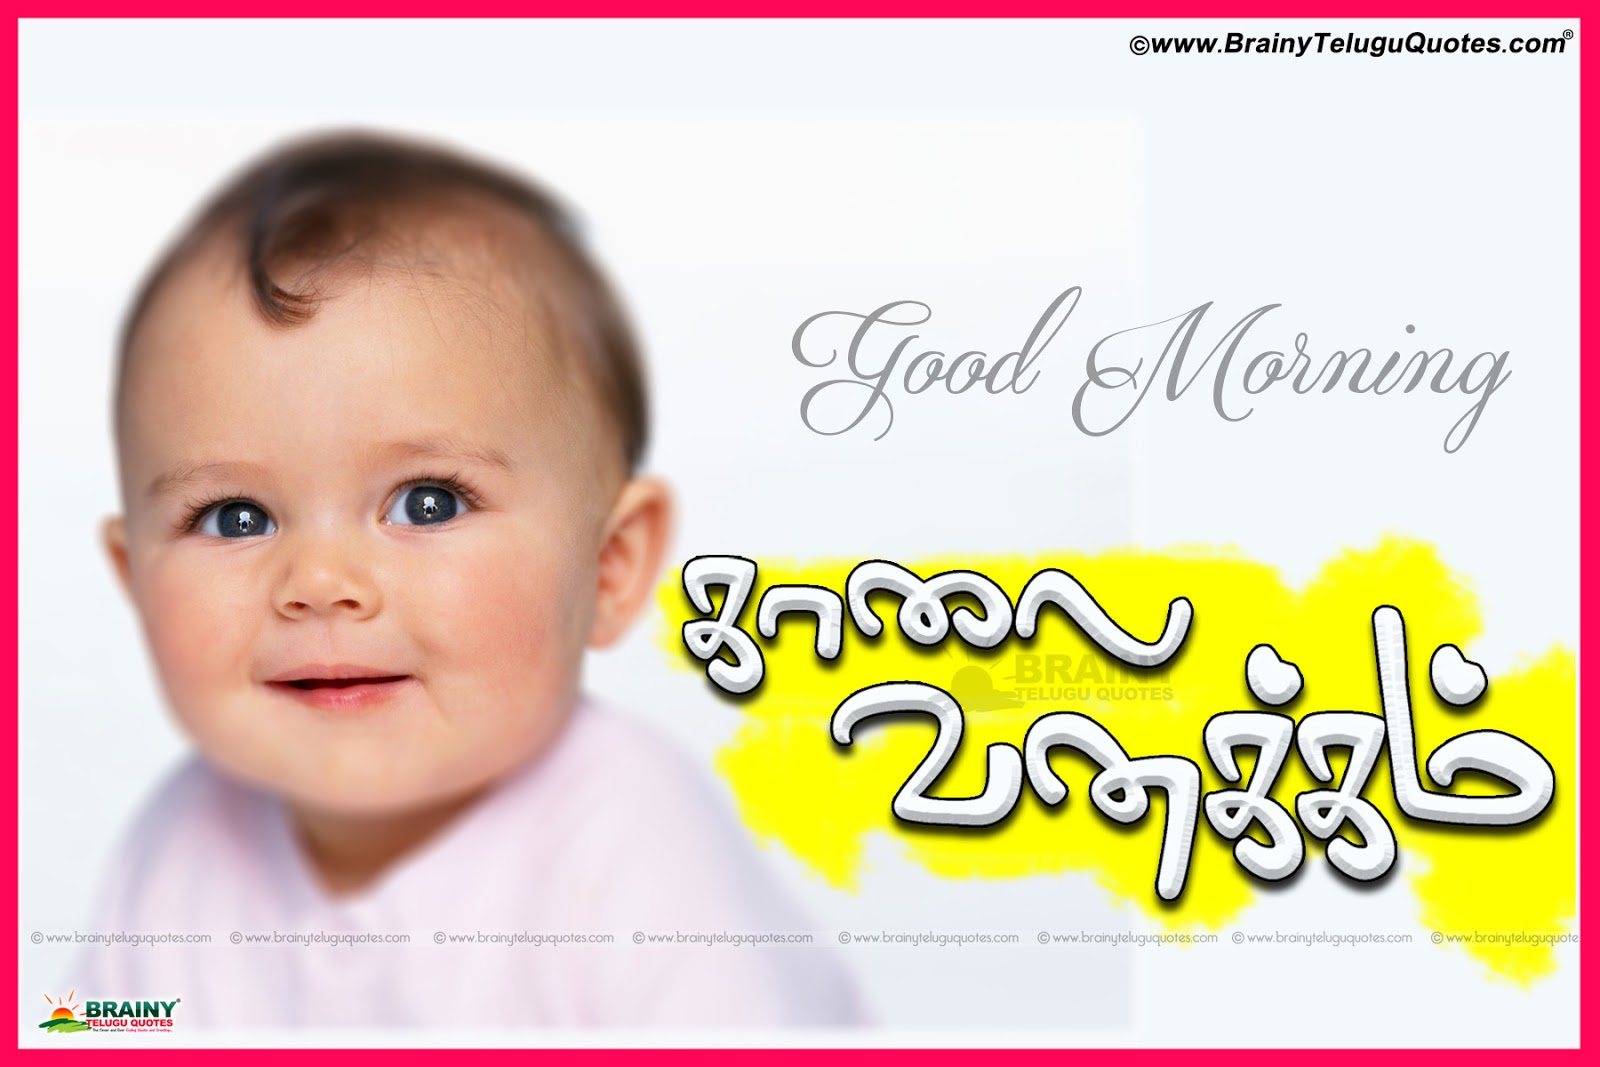 Good Morning In Japanese Yahoo : Kalai vanakkam tamil photo comment picturemate personal